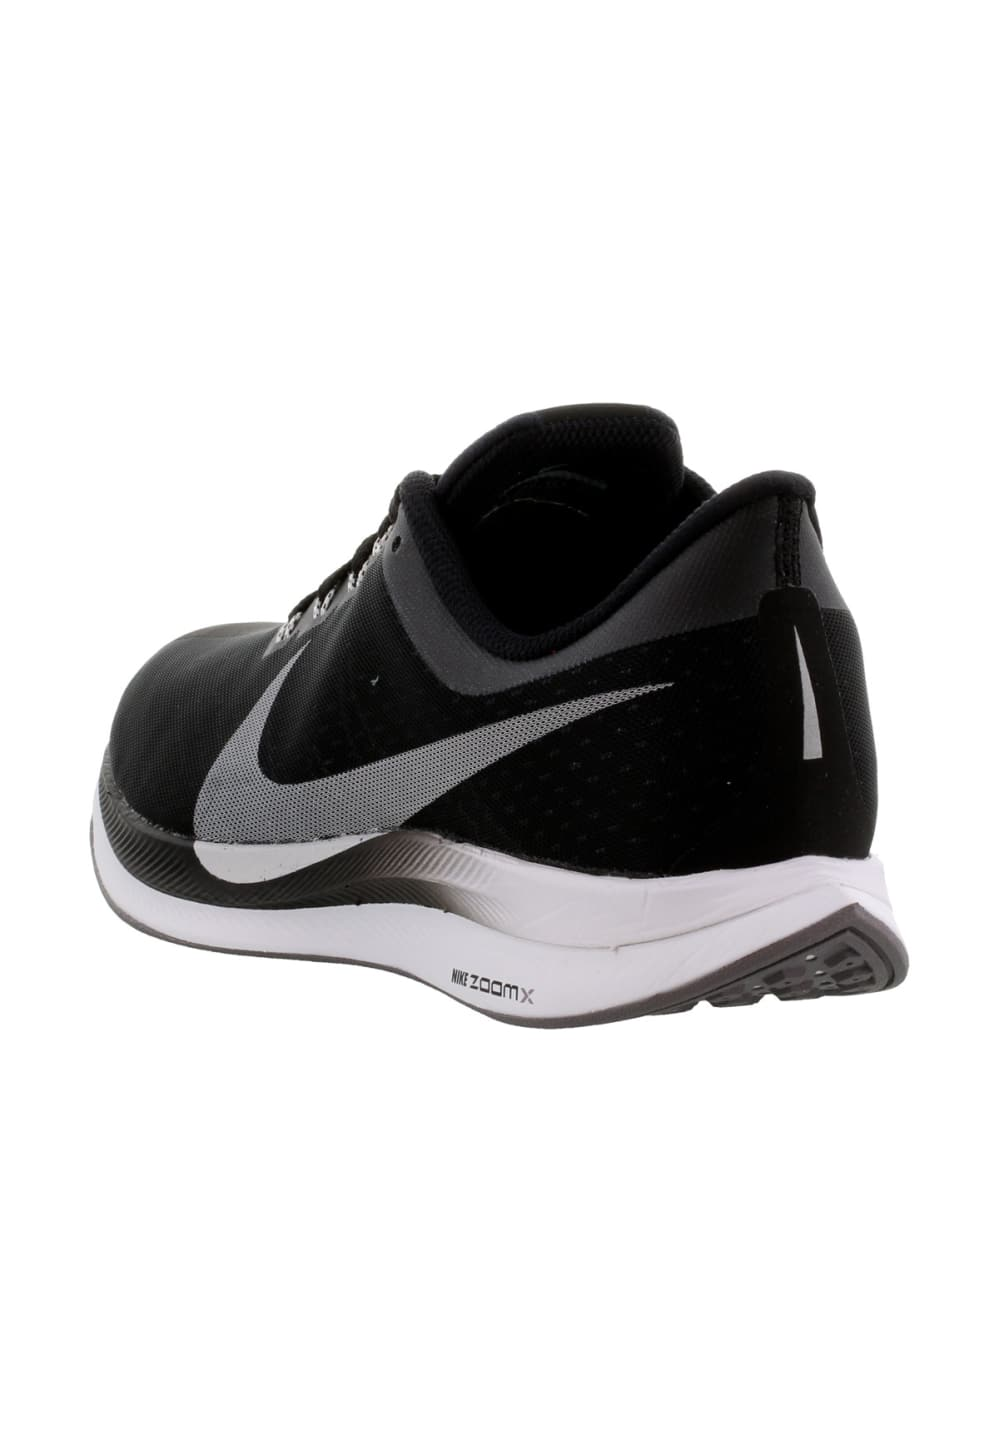 wholesale outlet undefeated x new products Nike Zoom Pegasus Turbo - Running shoes for Women - Black